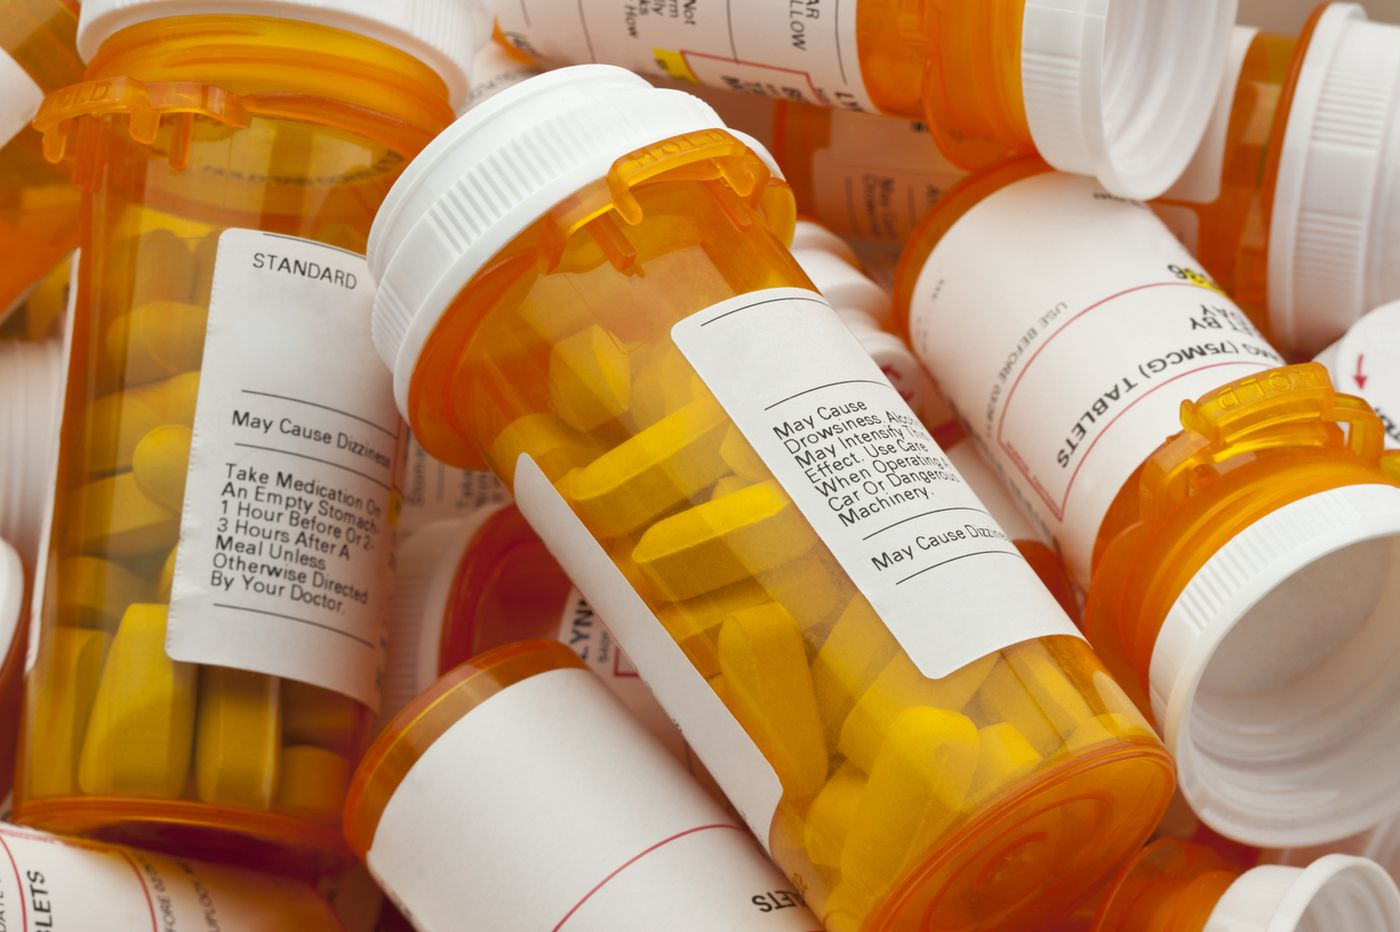 Number of people buying prescription medications outside U.S. could rise with unemployment, uninsured rates